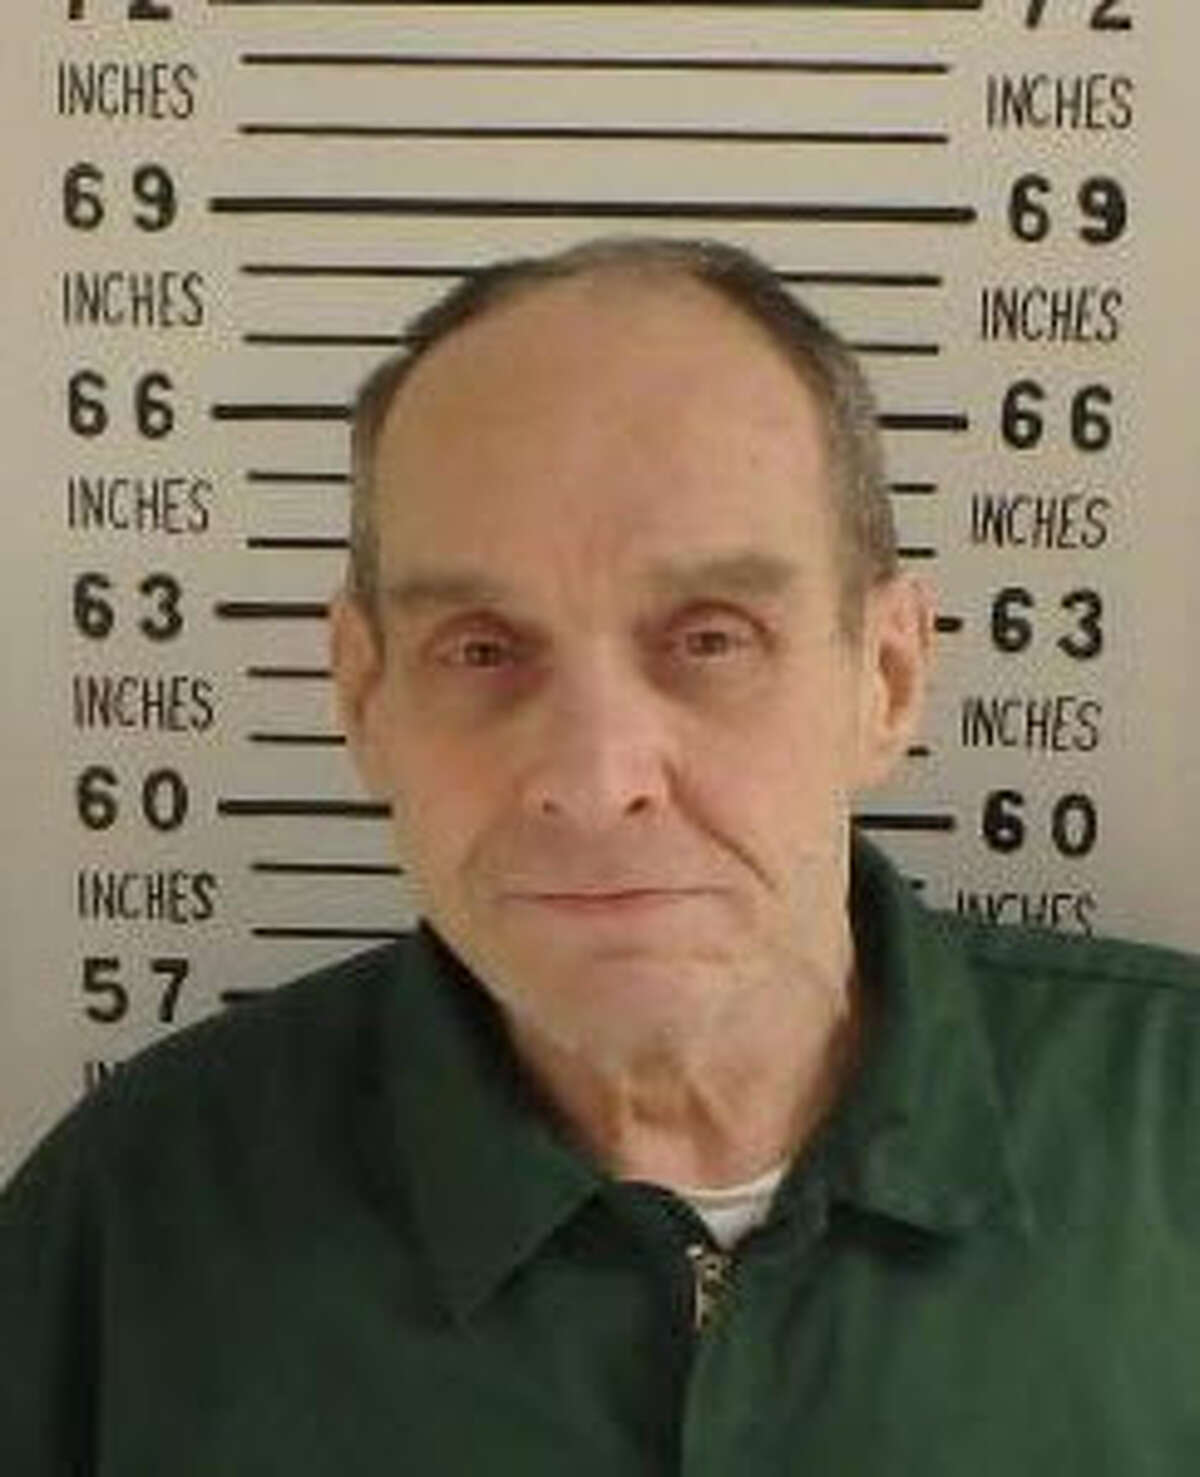 Henry Dusablon was convicted of two counts of murder in 1963 and sentenced to 20 years to life in state prison. He is currently incarcerated at Mohawk Correctional Facility.